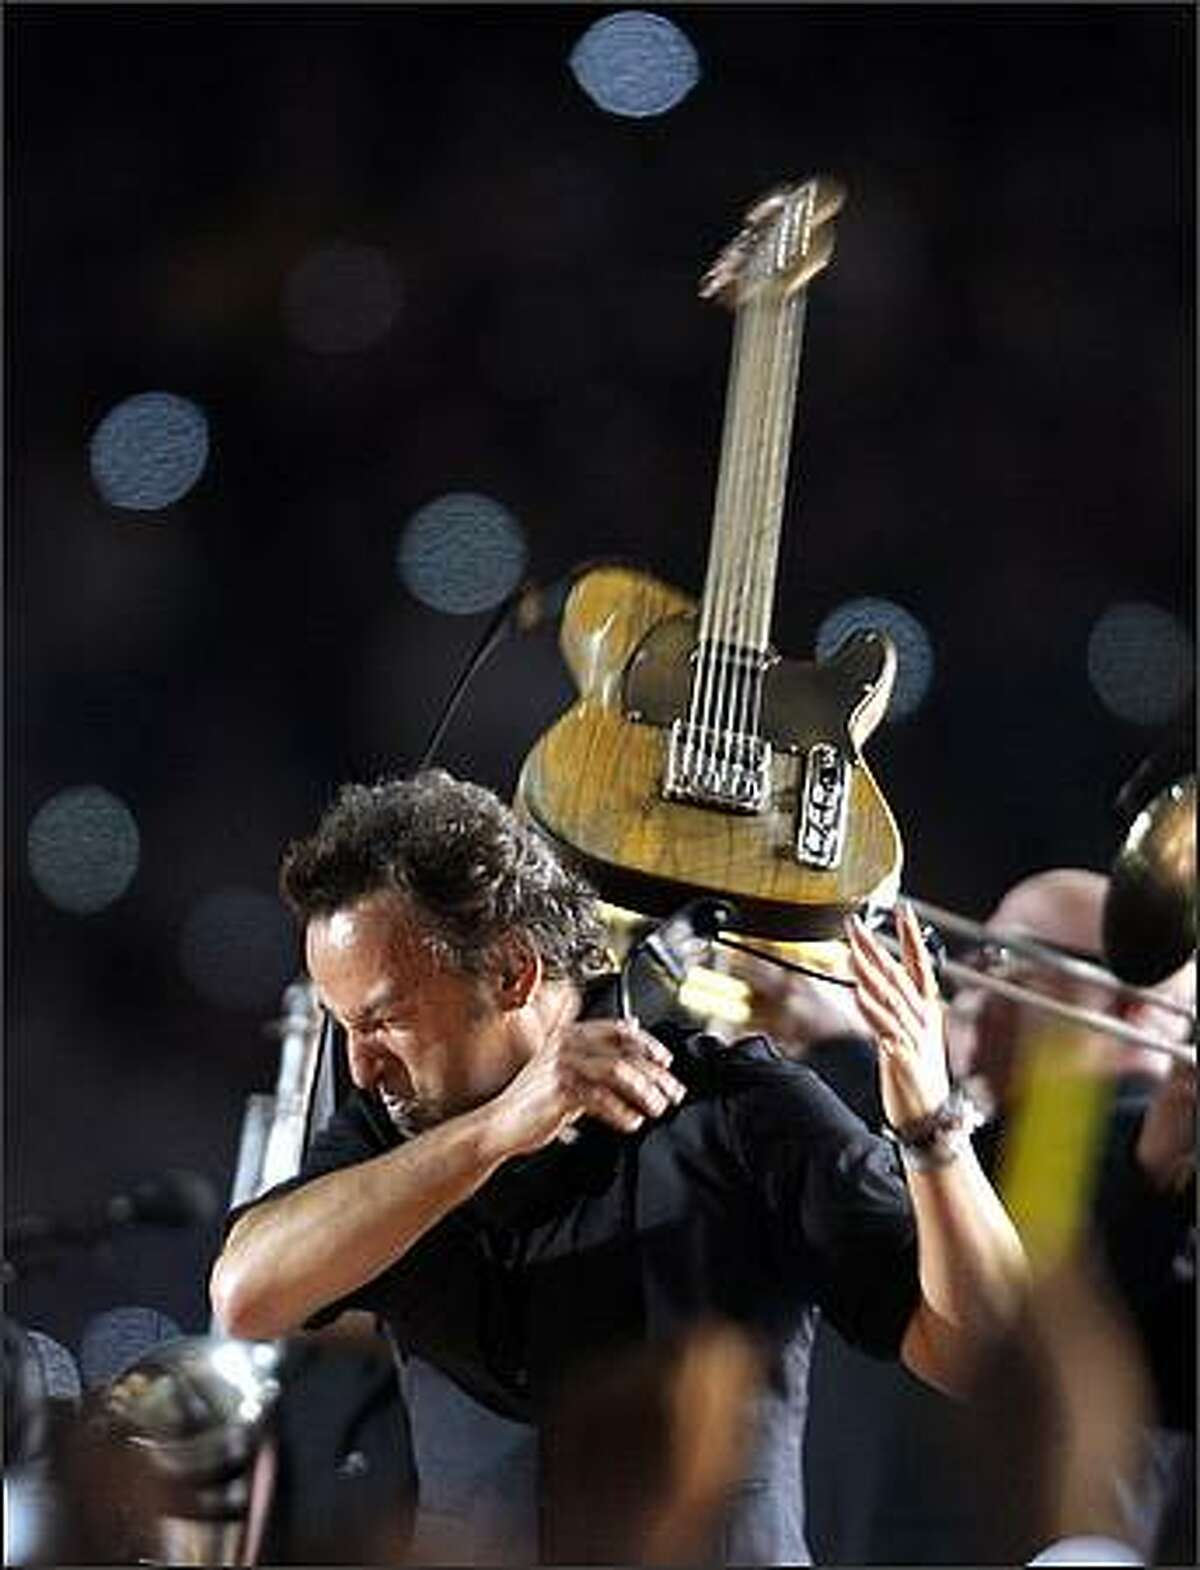 Bruce Springsteen performs at halftime during Super Bowl XLIII. (AP Photo/Amy Sancetta)